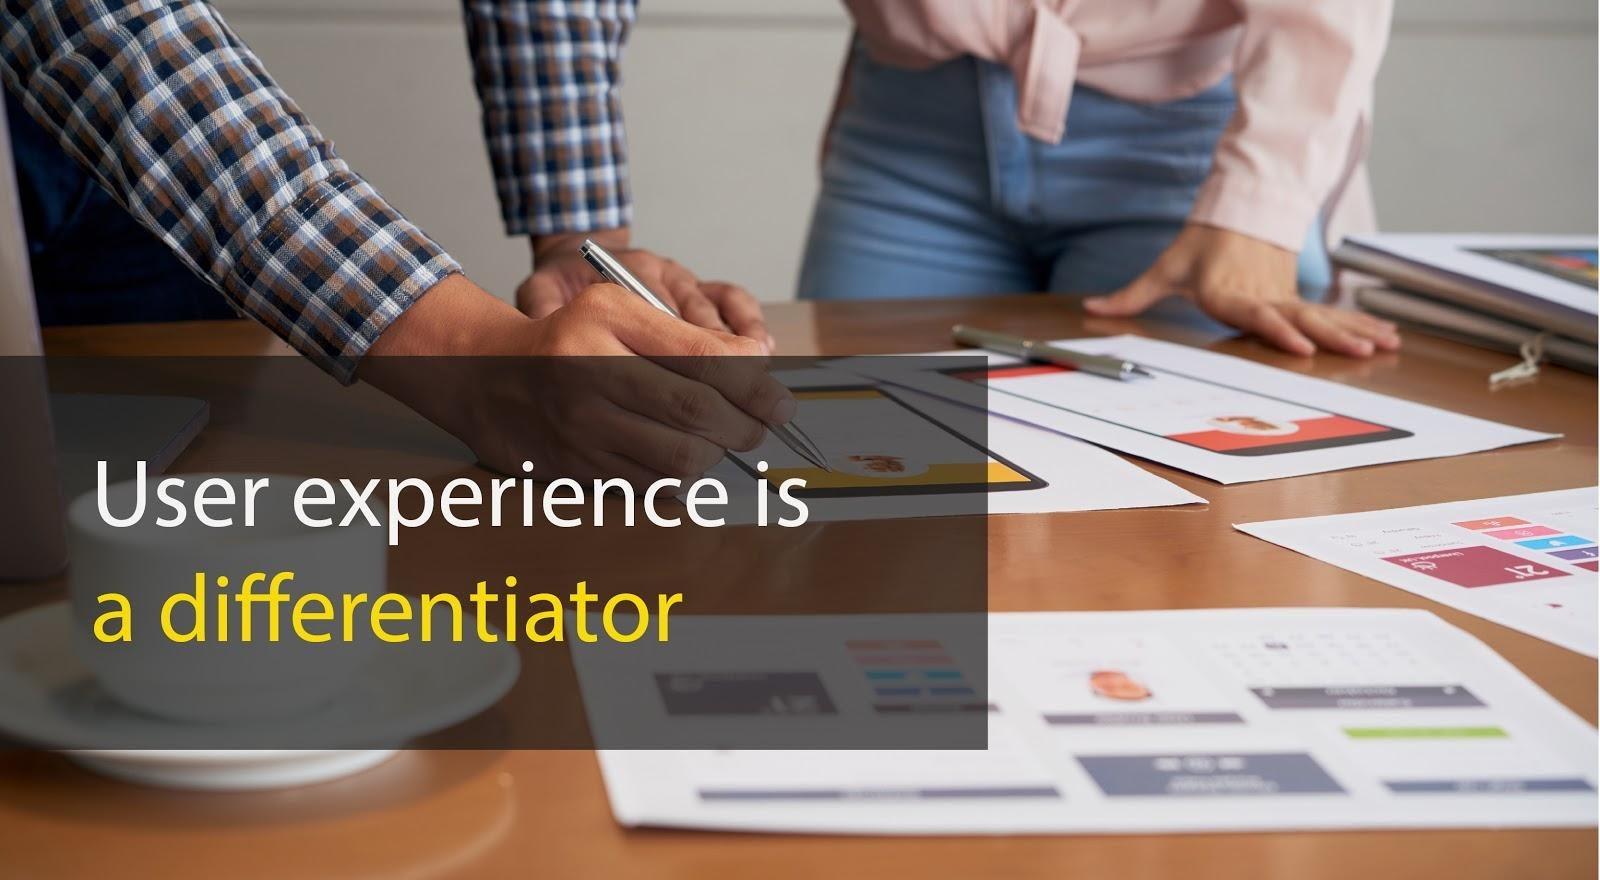 User experience is a differentiator at the online site